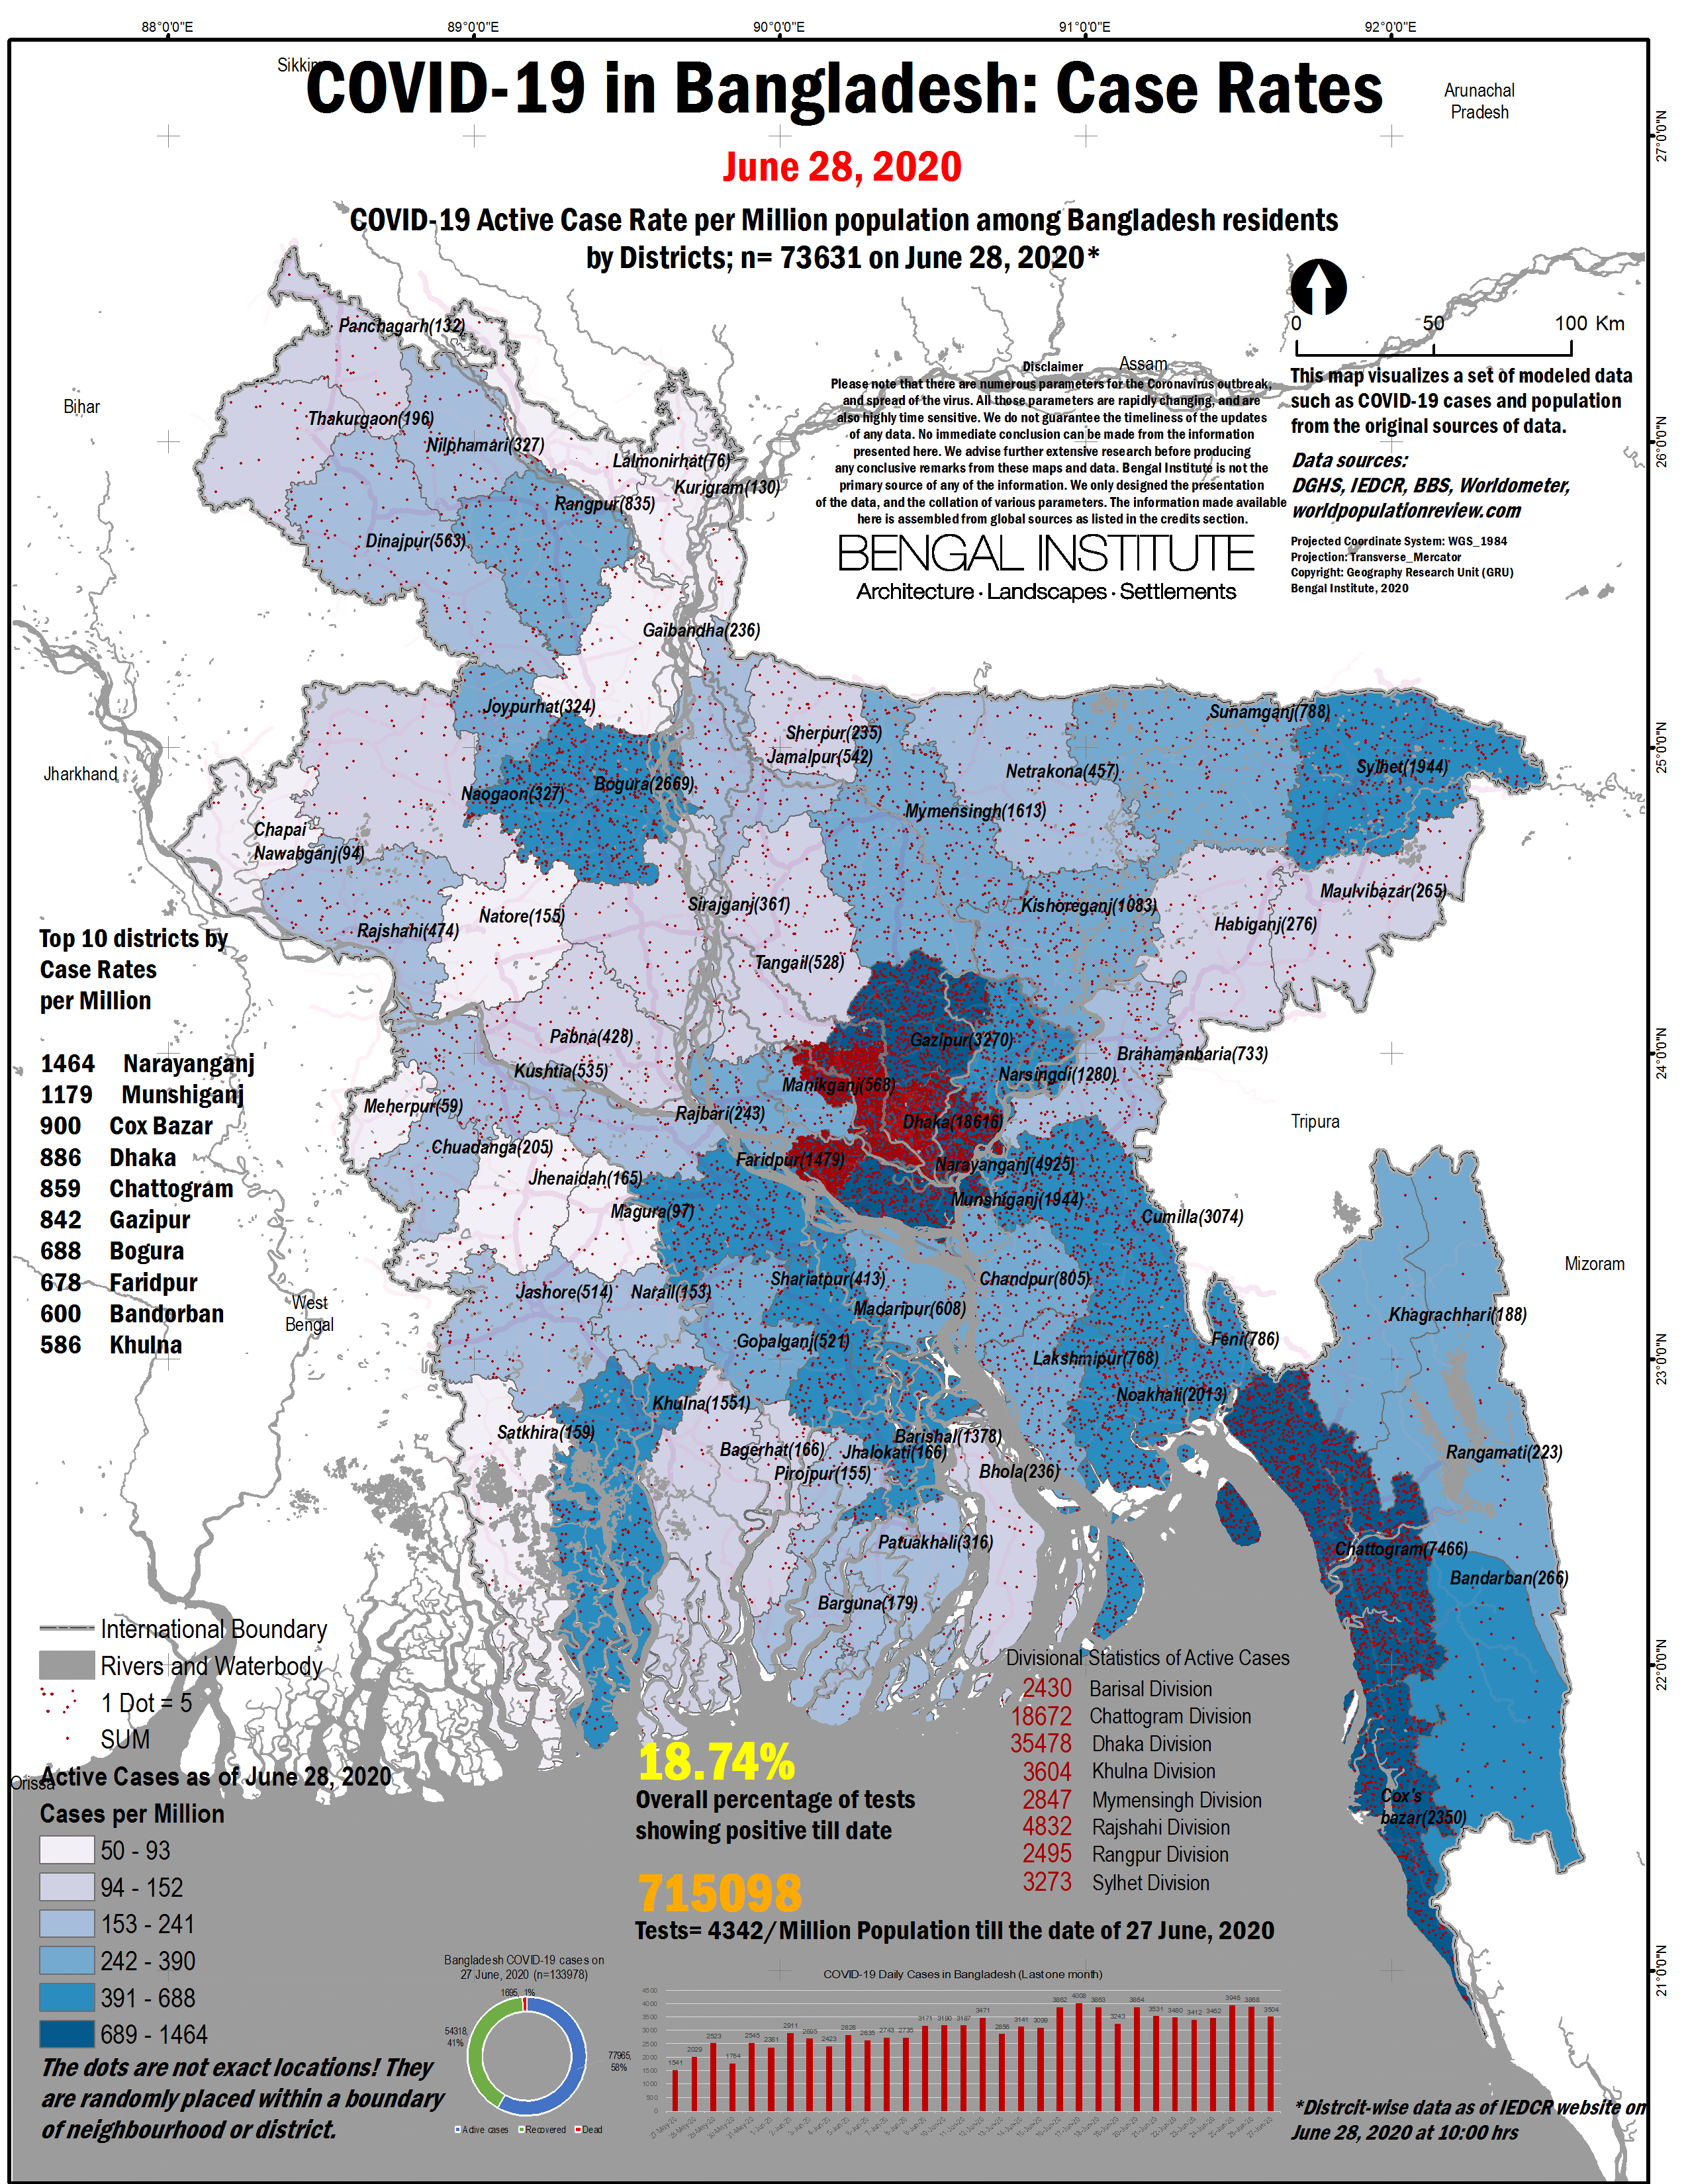 Covid19 Case Rate In Bangladesh Interactive Map Bengal Institute For Architecture Landscapes And Settlements